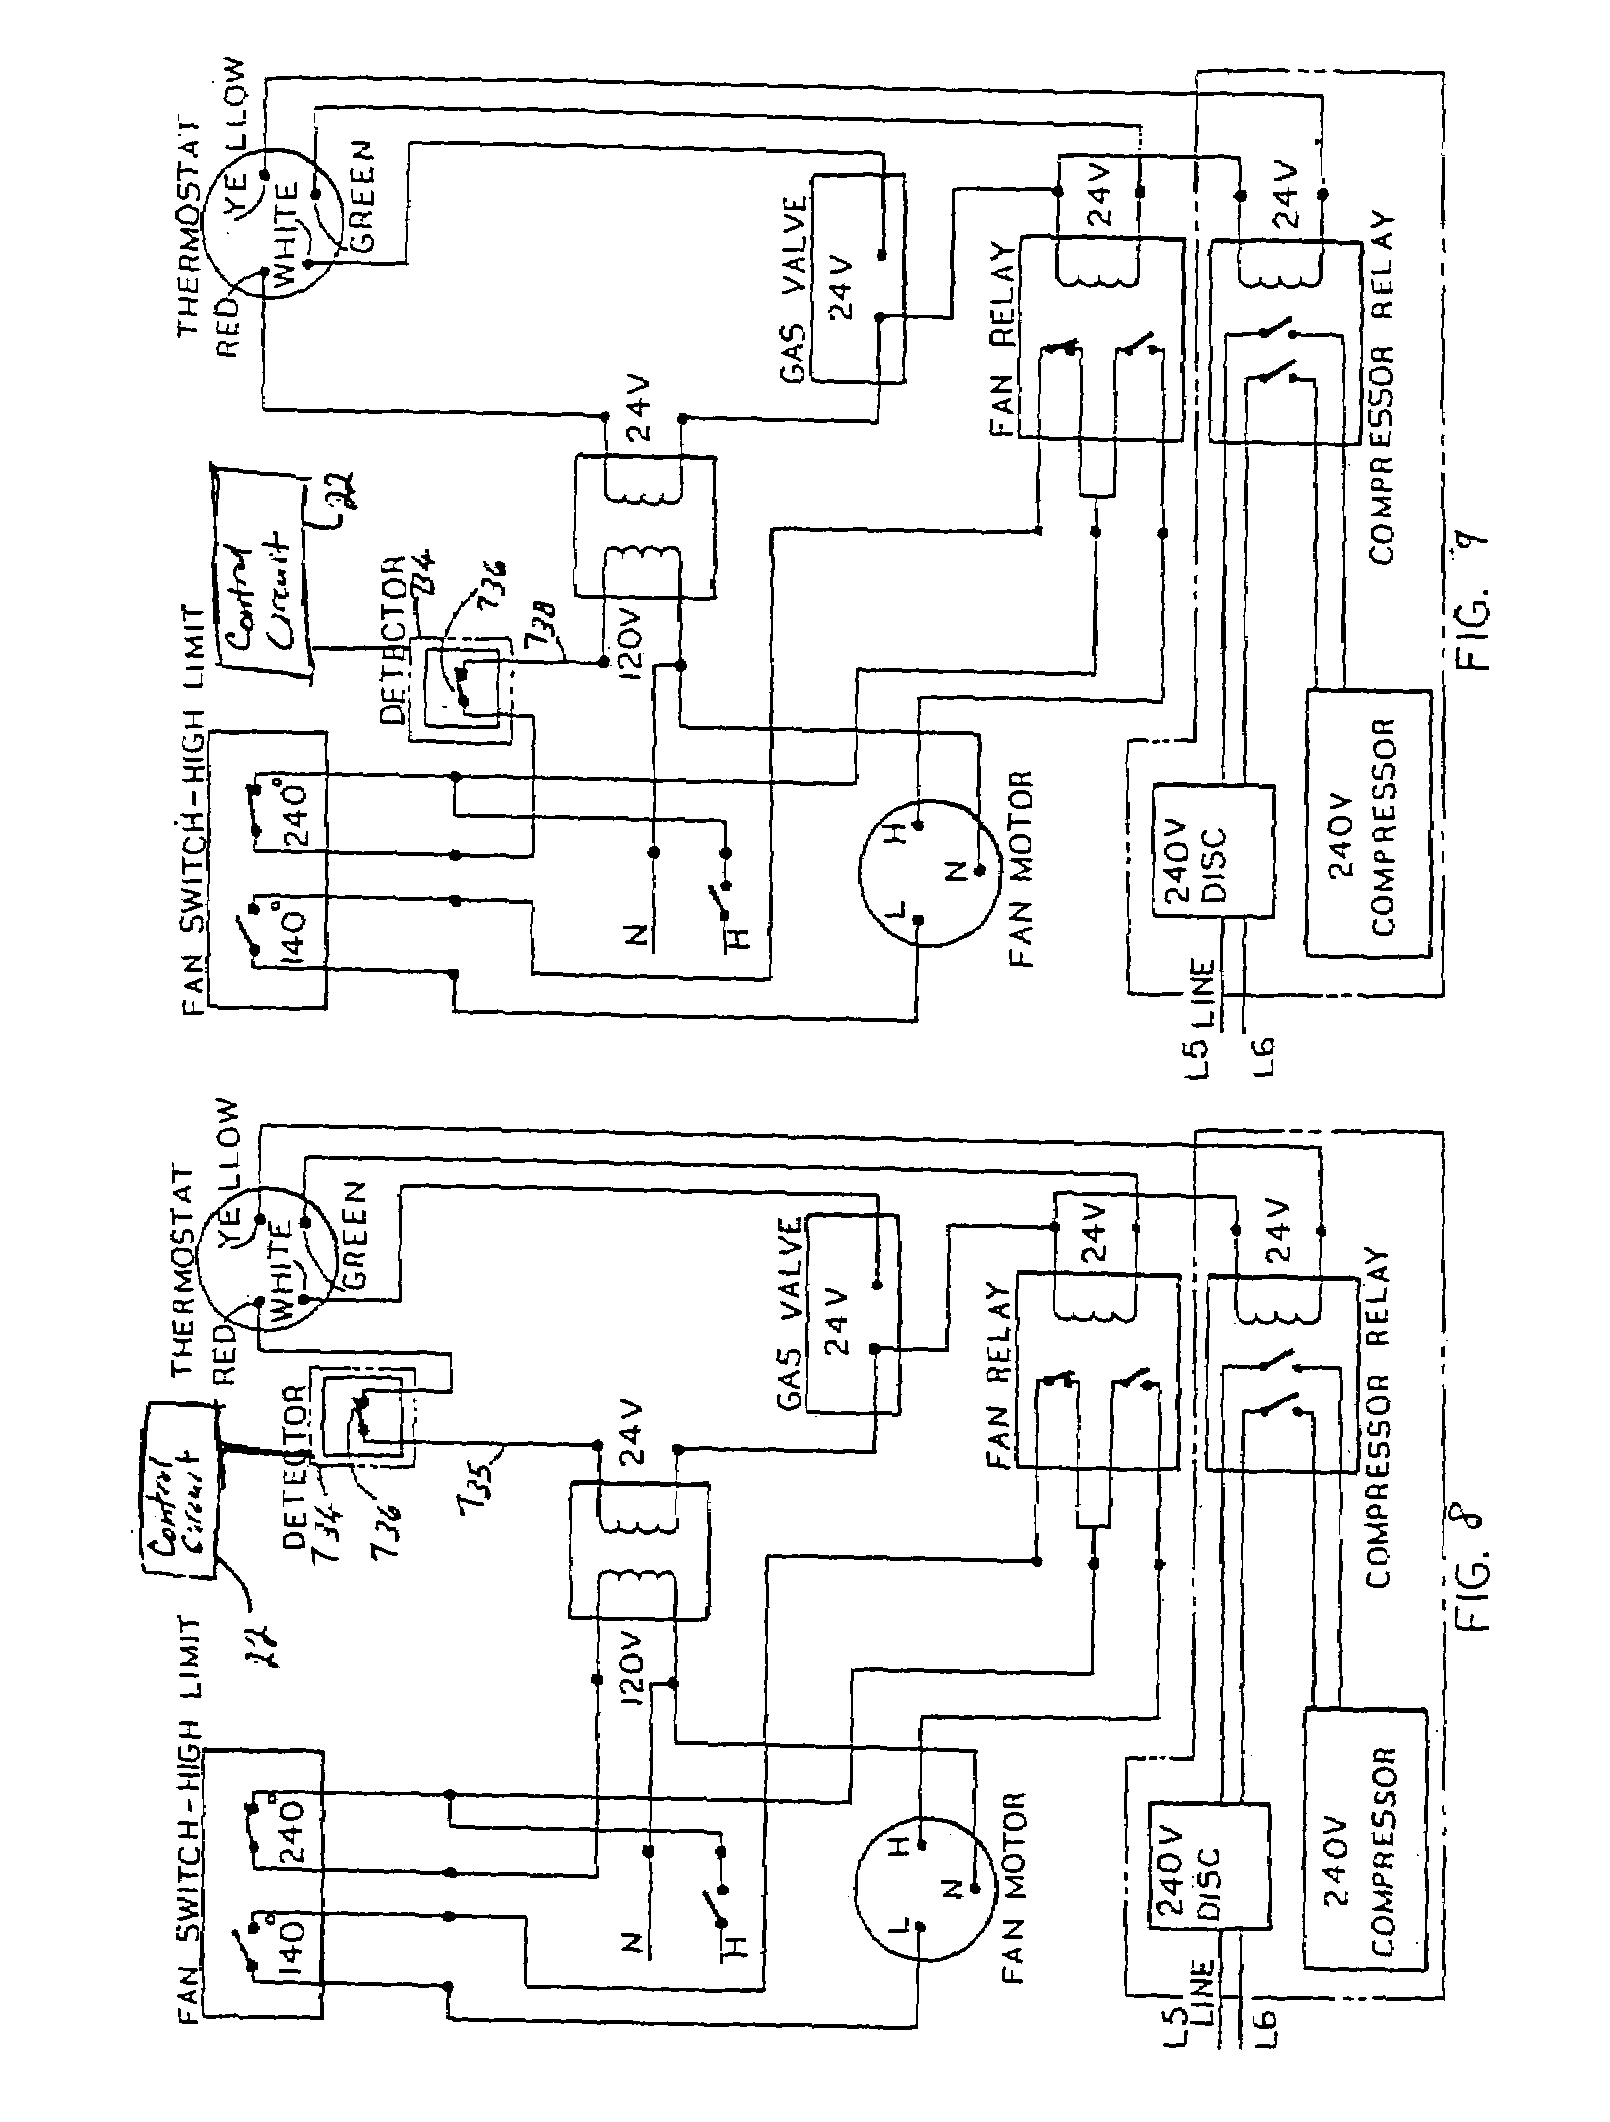 Patent Us7005994 Smart Fire Alarm And Gas Detection